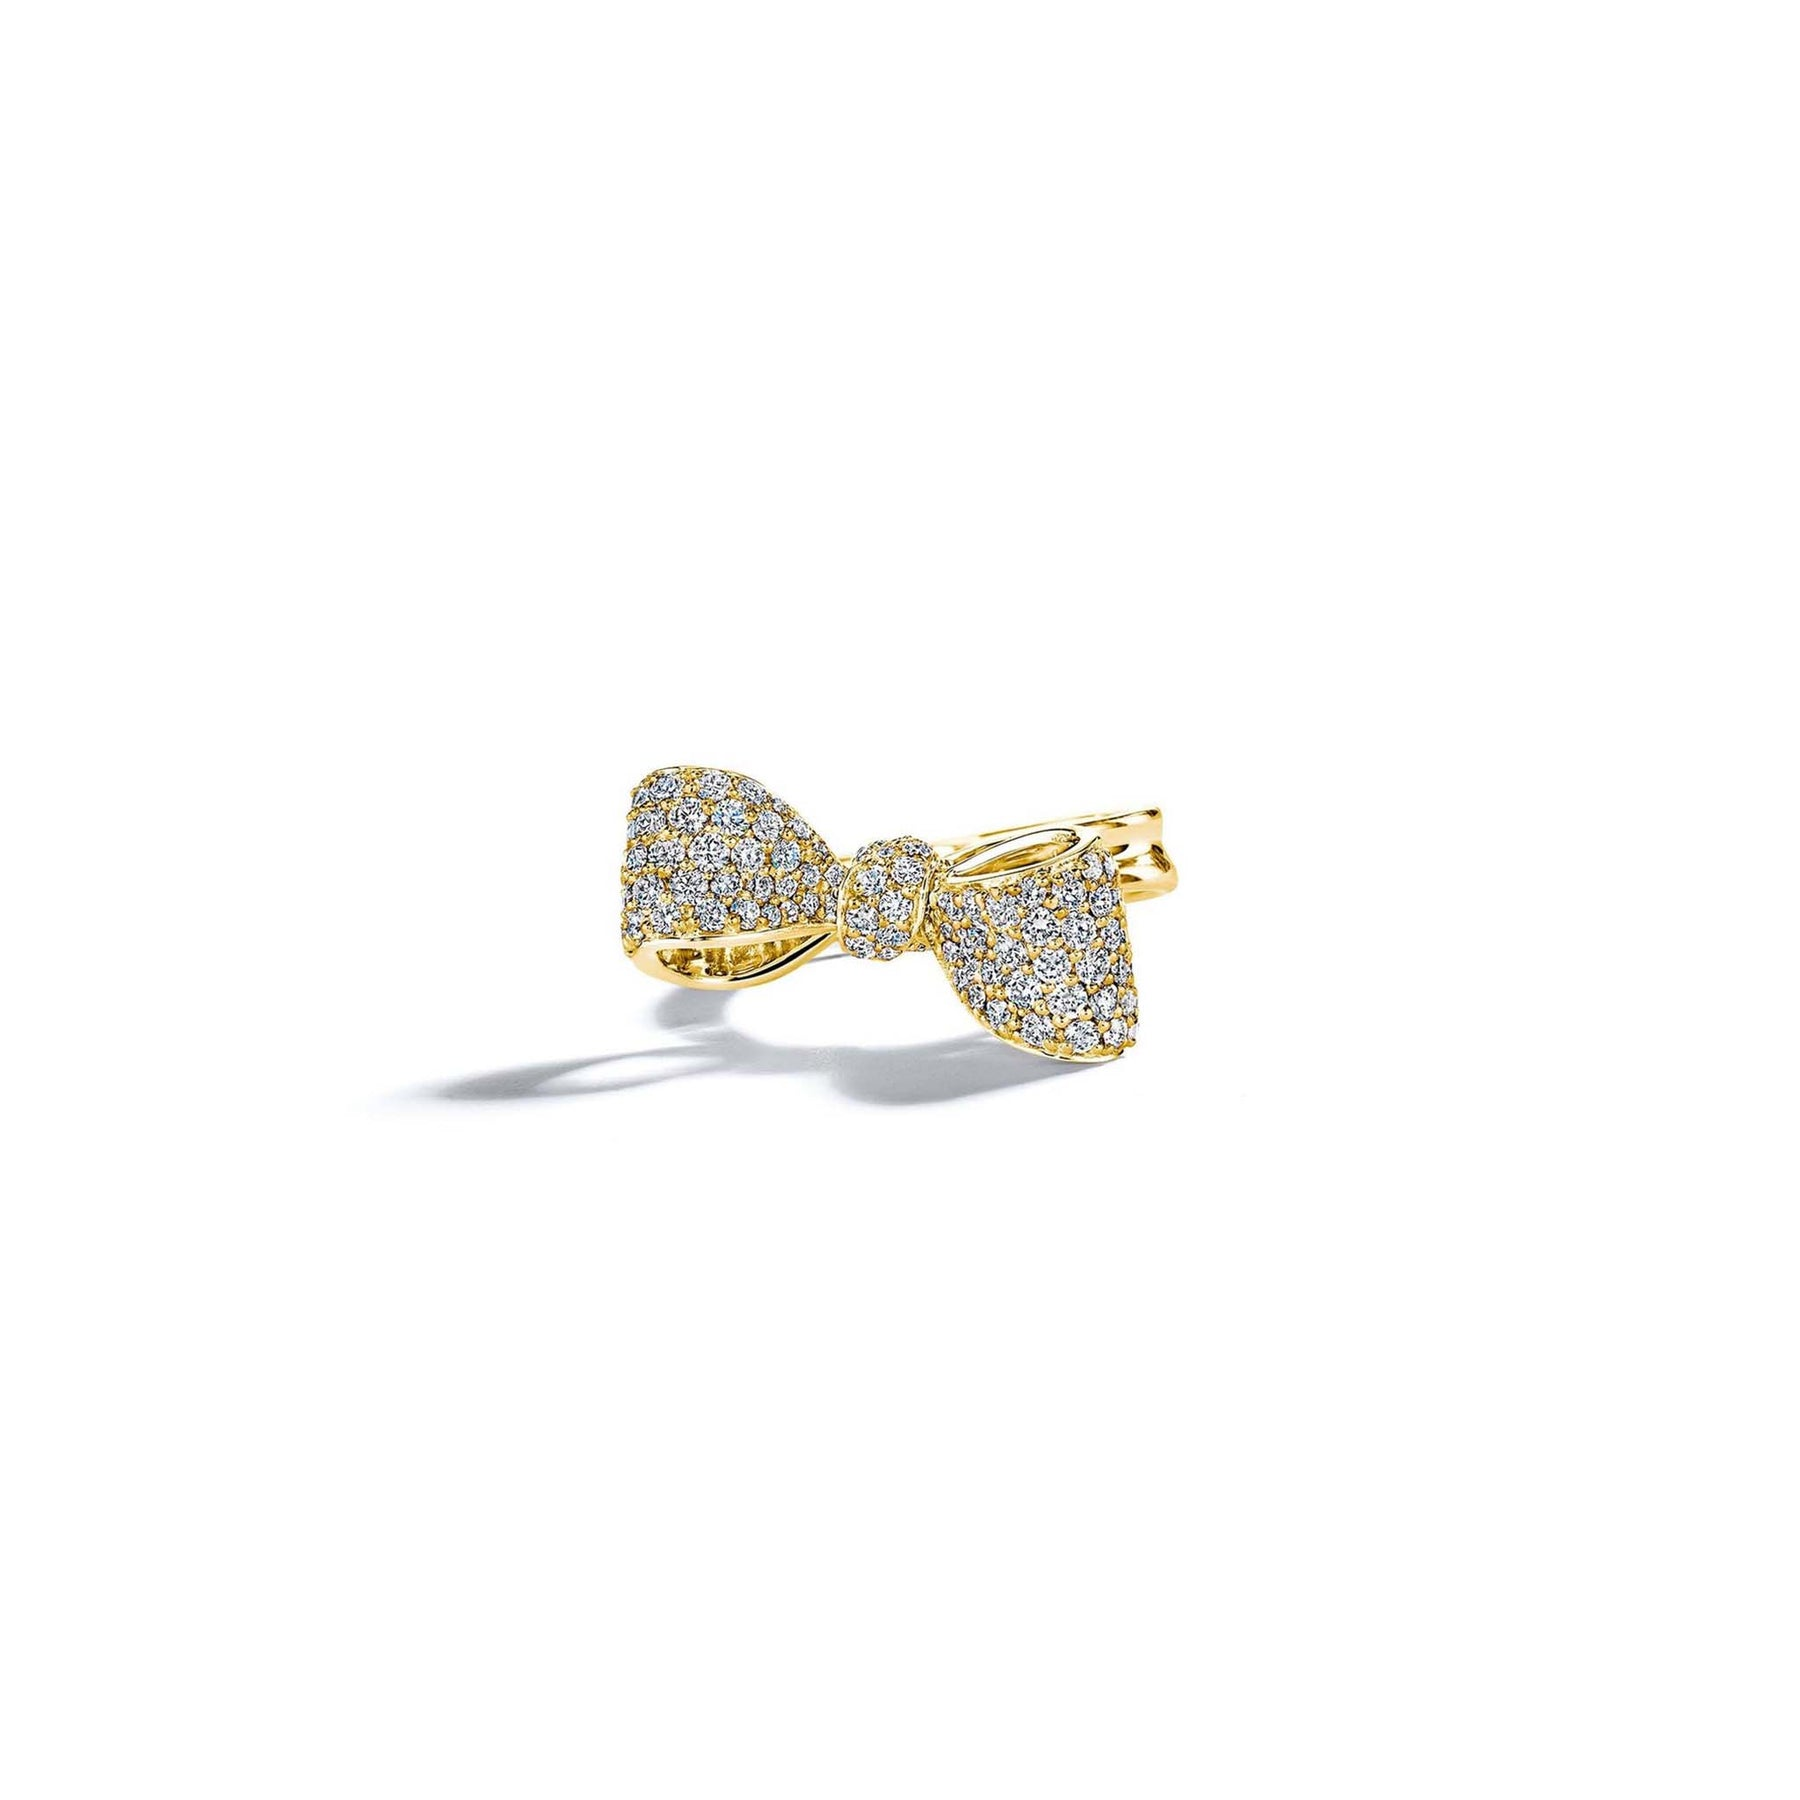 Mimi-So-Bow-Small-Pave-Diamond-Ring_18k Yellow Gold